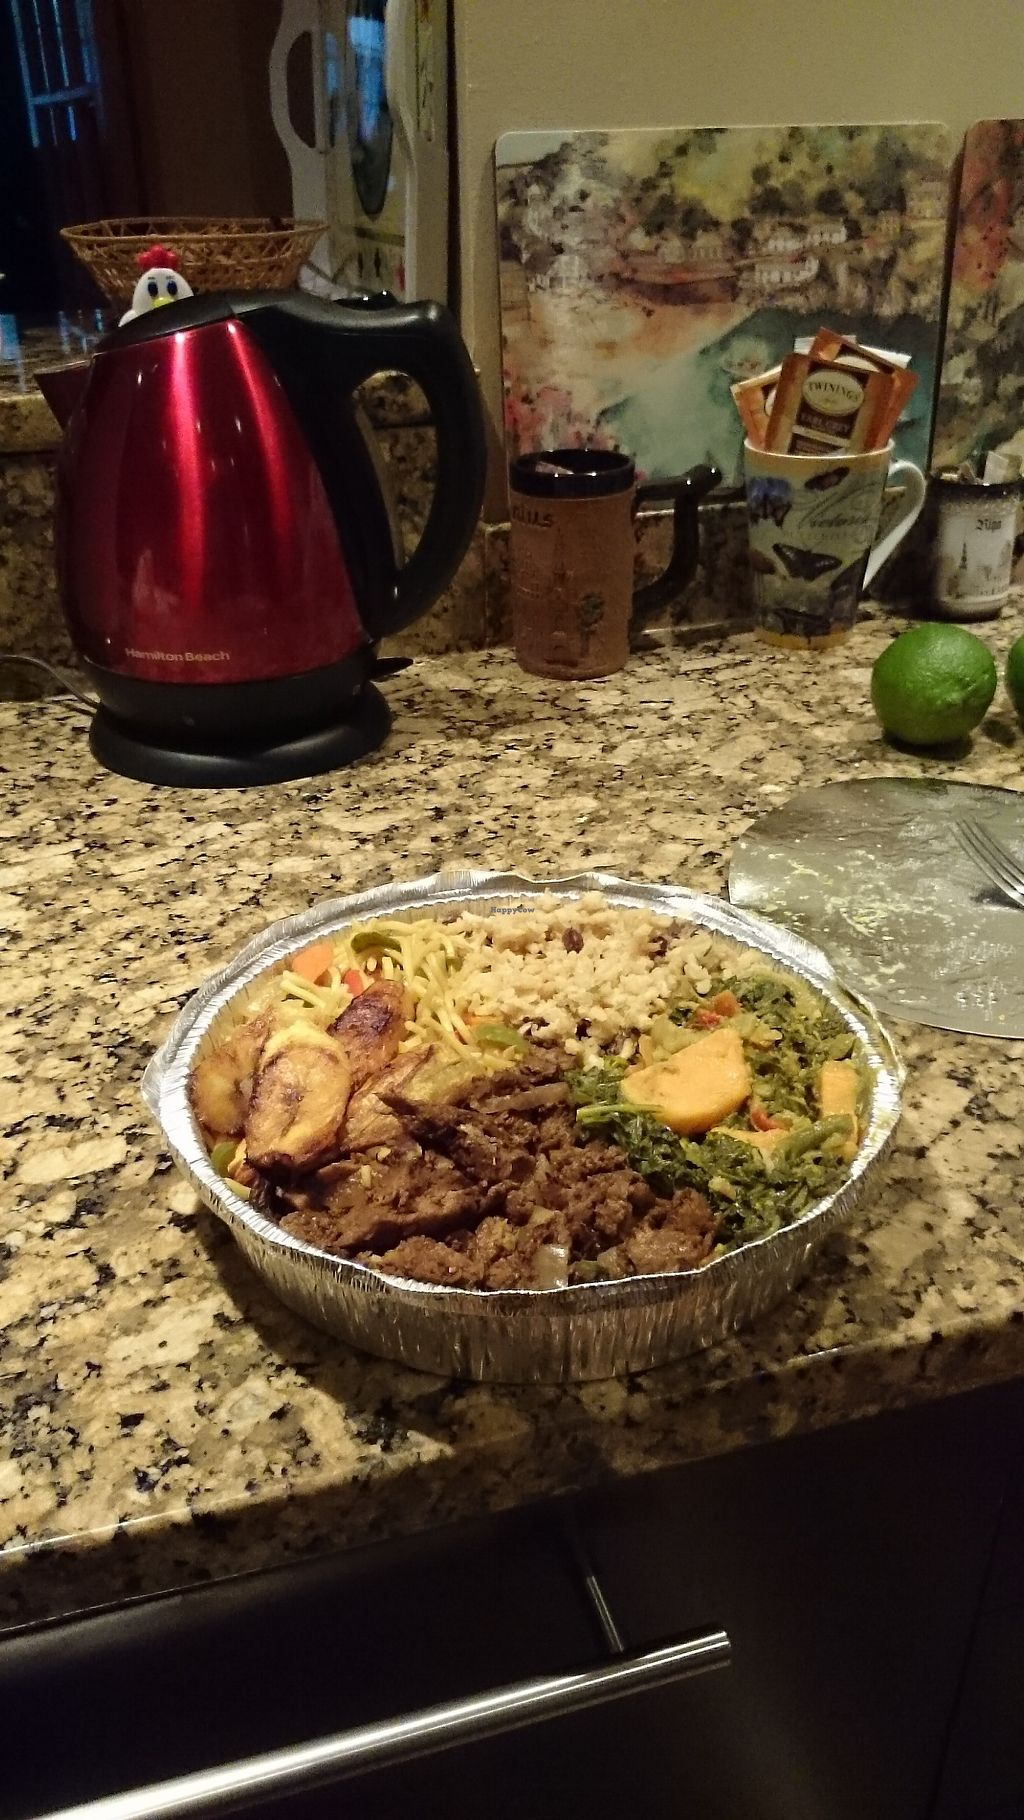 """Photo of Luvinya-215  by <a href=""""/members/profile/ZoraySpielvogel"""">ZoraySpielvogel</a> <br/>This plater was big enough for 3 large meal ? just for about $10 <br/> January 30, 2018  - <a href='/contact/abuse/image/107242/352904'>Report</a>"""